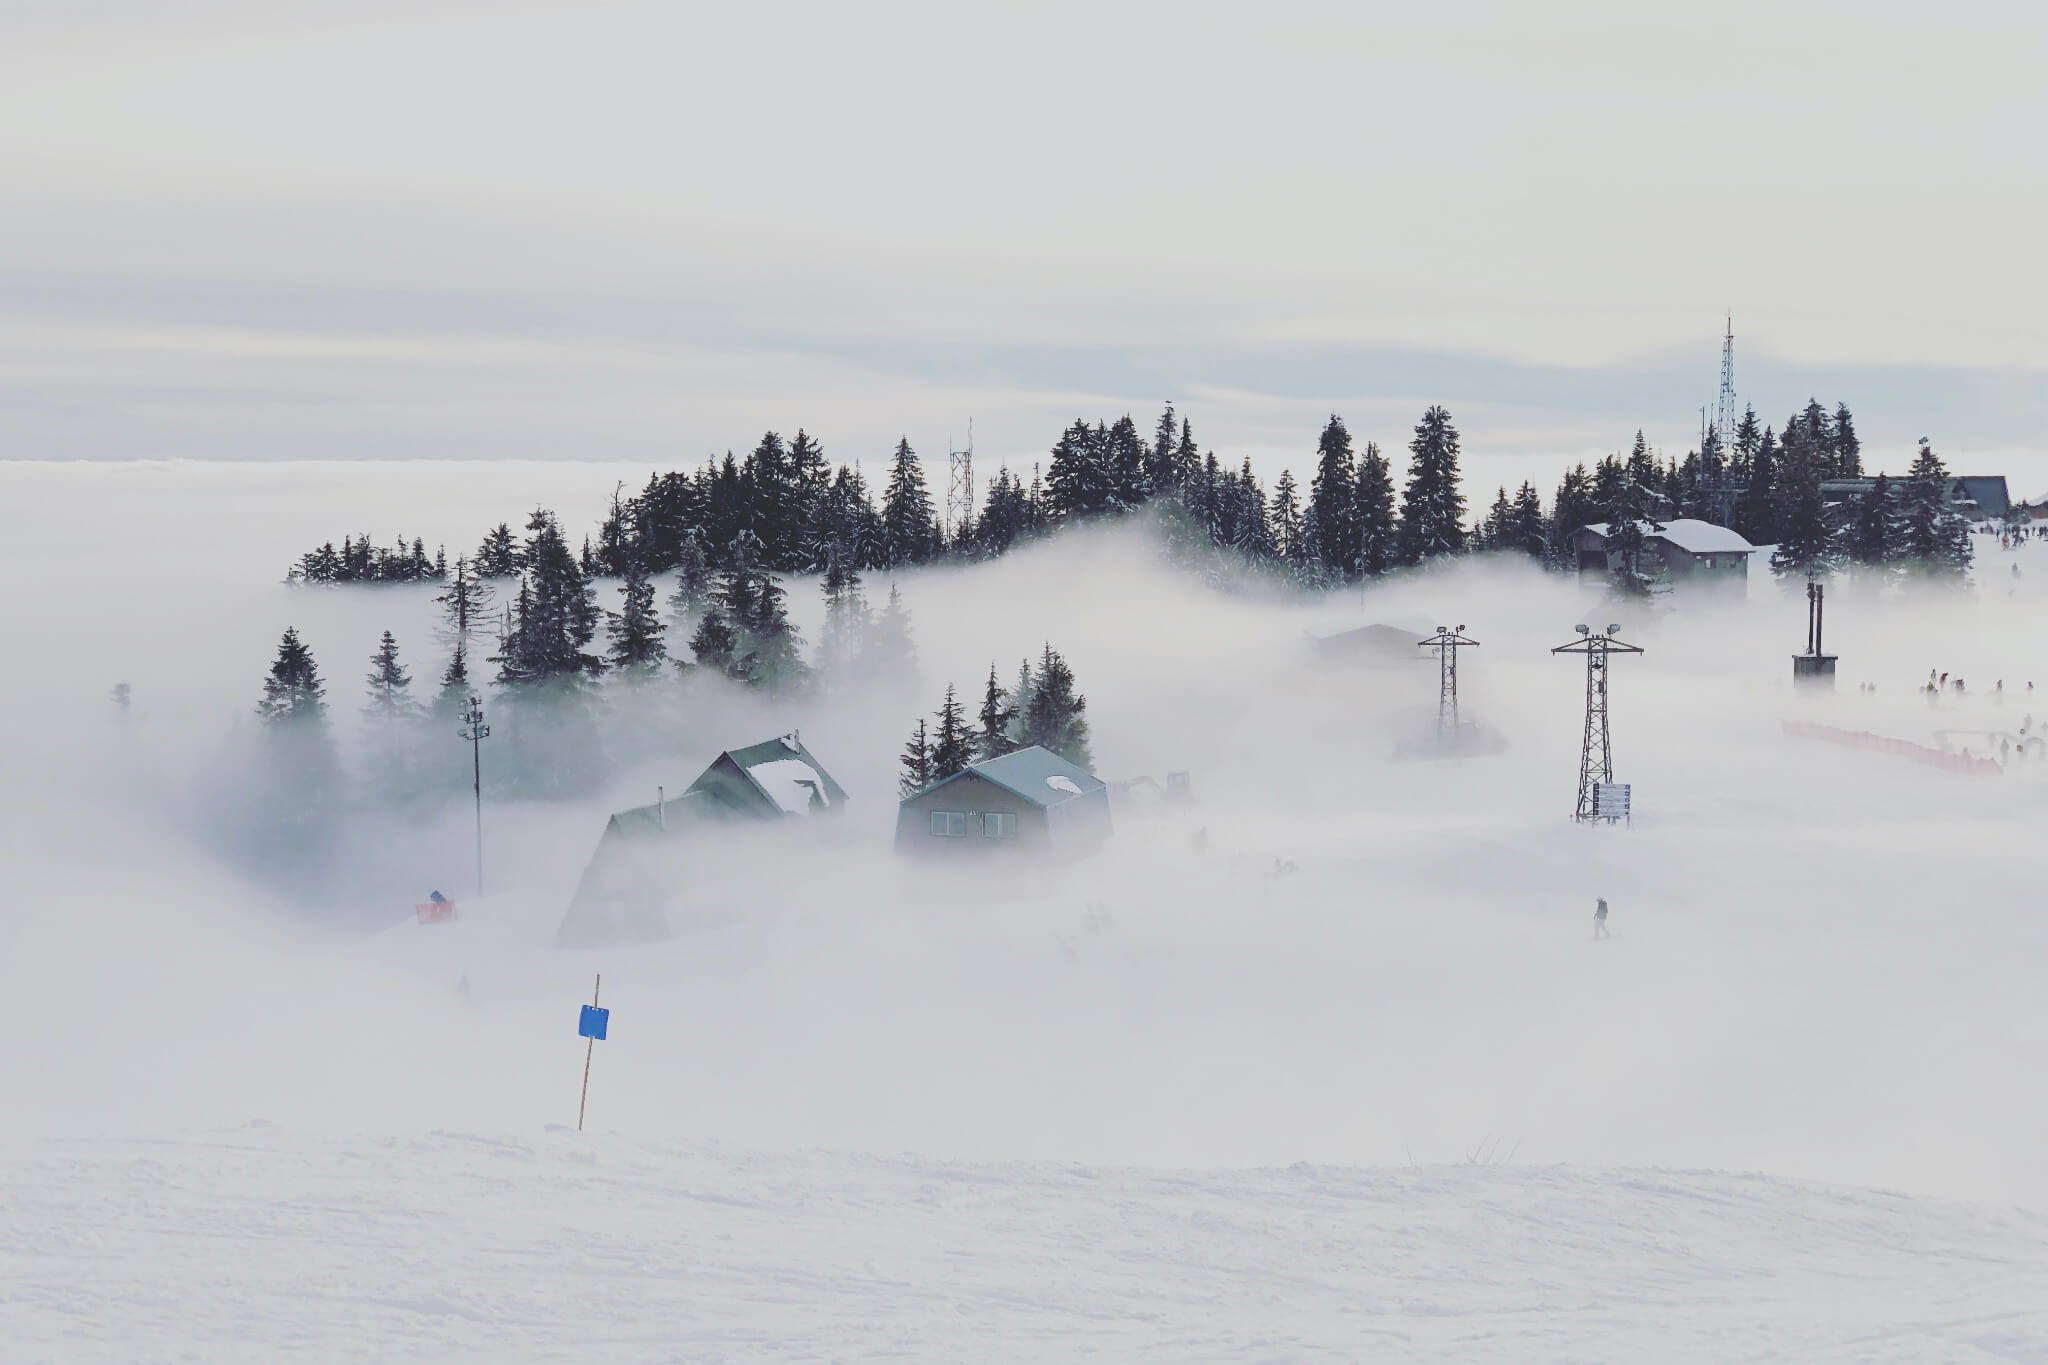 Grouse Mountain, January 26th, 2019